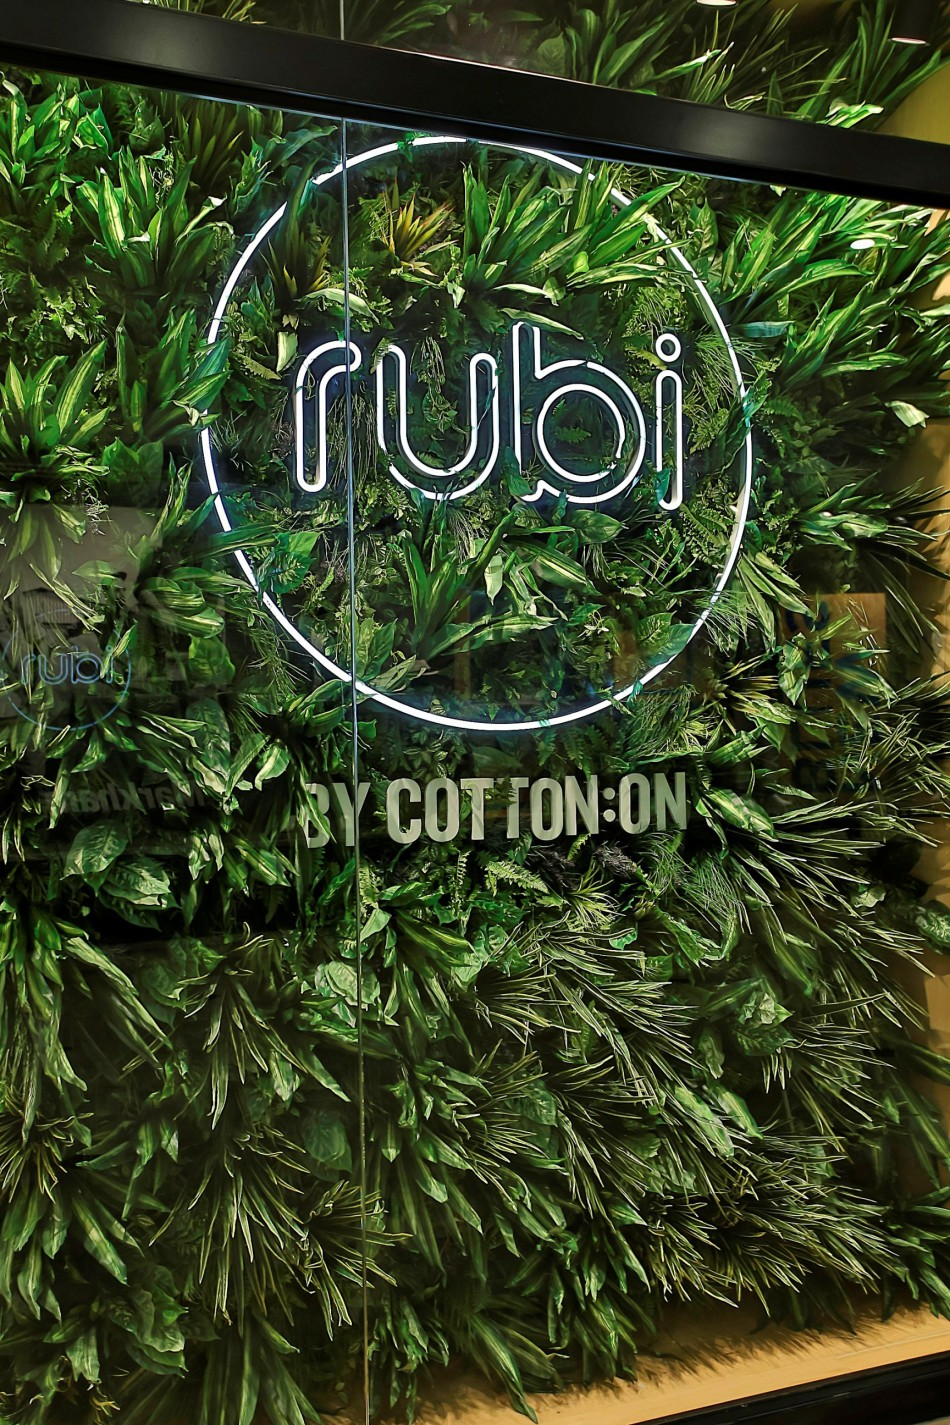 cba2a17c3c1e Rubi by Cotton On launches its first standalone stores